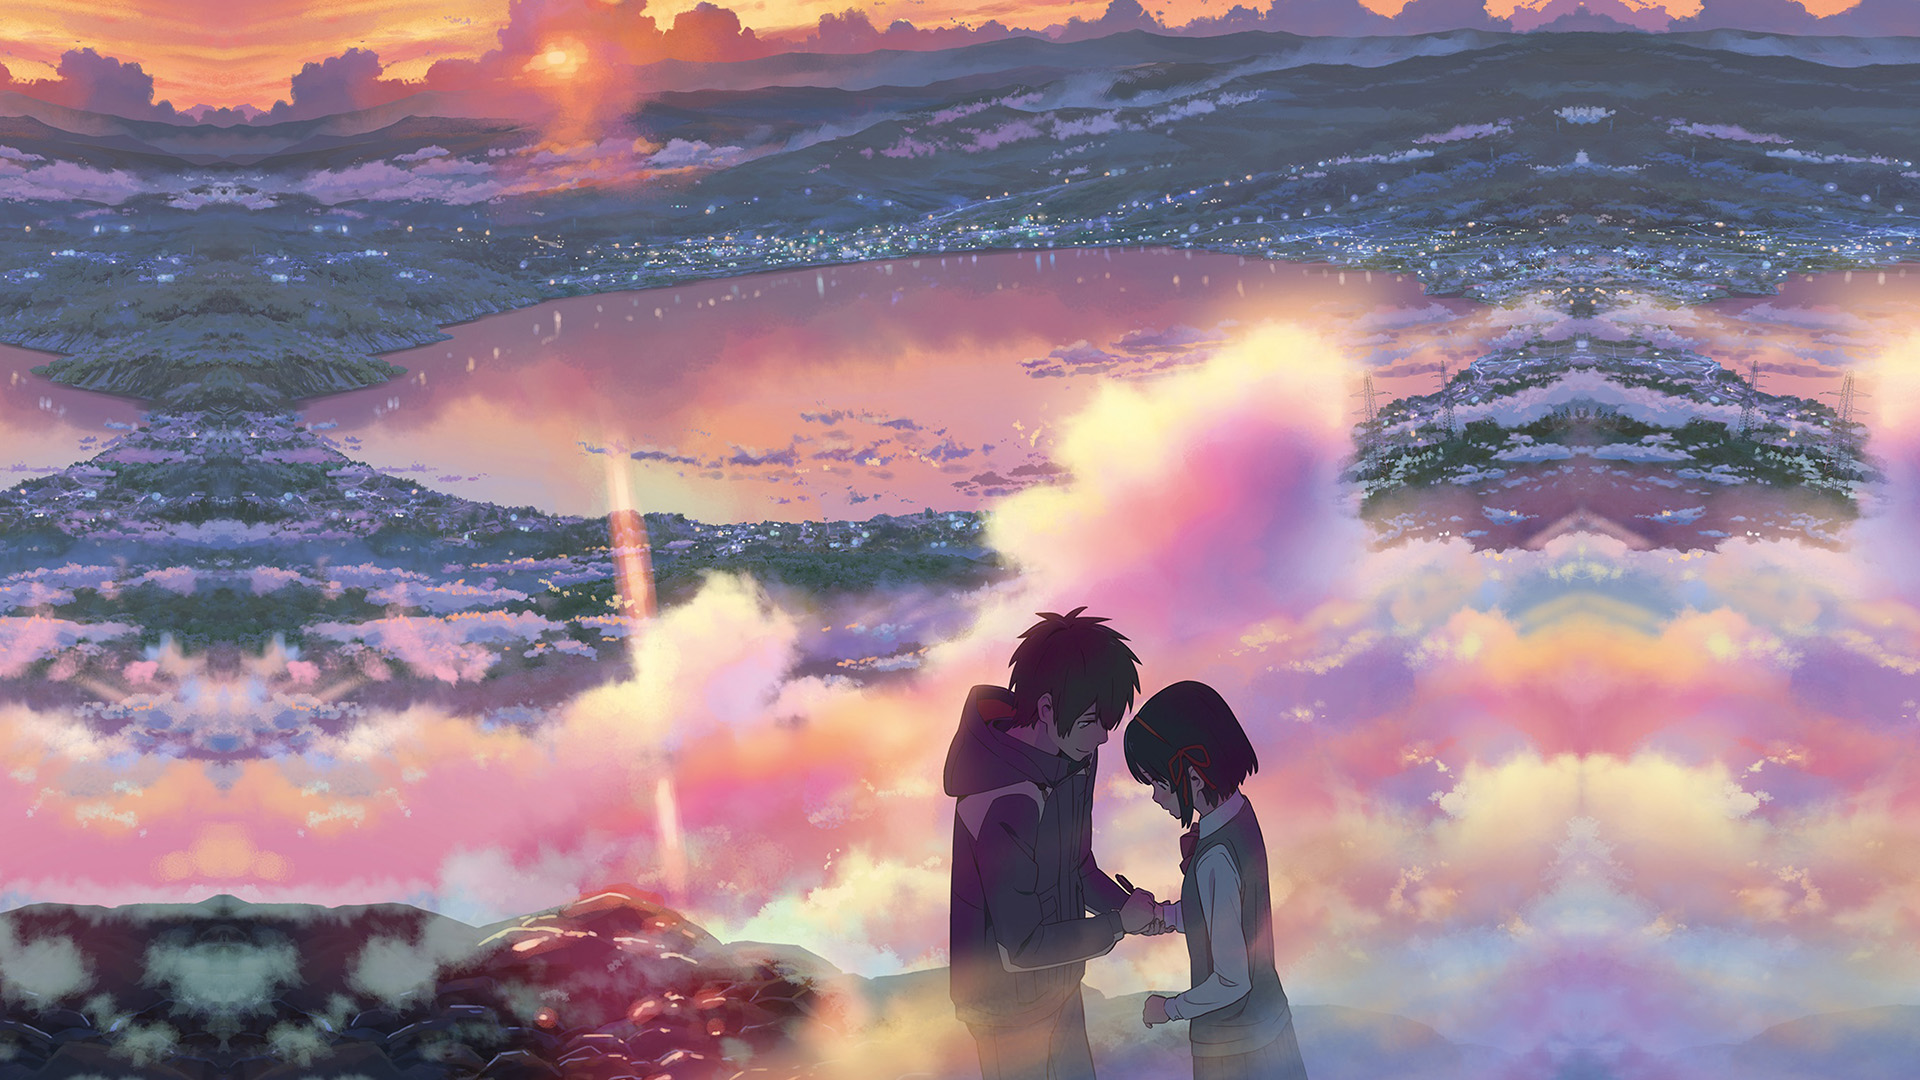 wallpaper for desktop, laptop | aw26-yourname-anime-filme ...